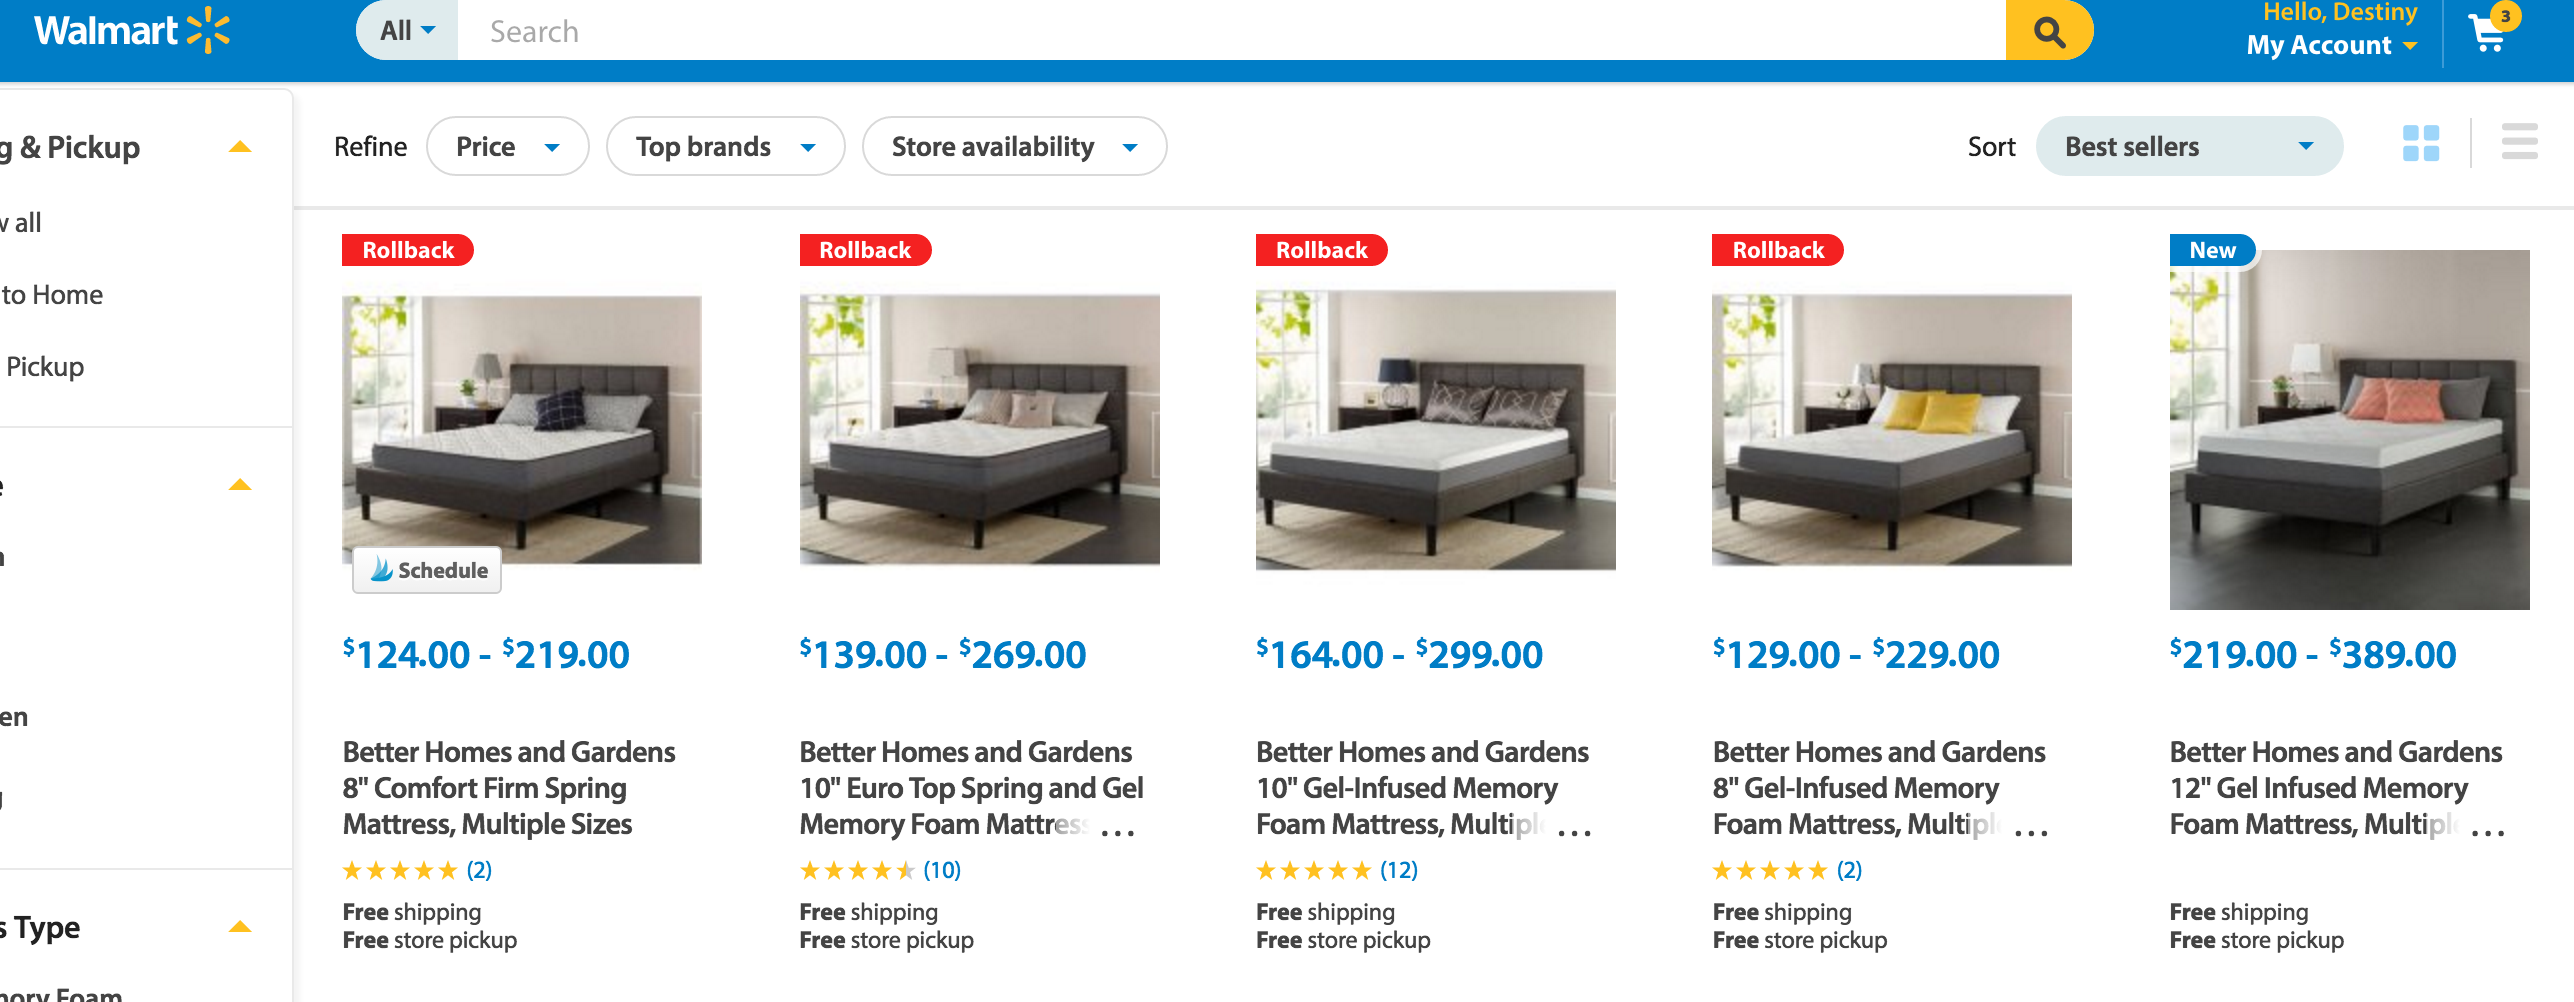 Better Homes and Garden Walmart Mattress Options